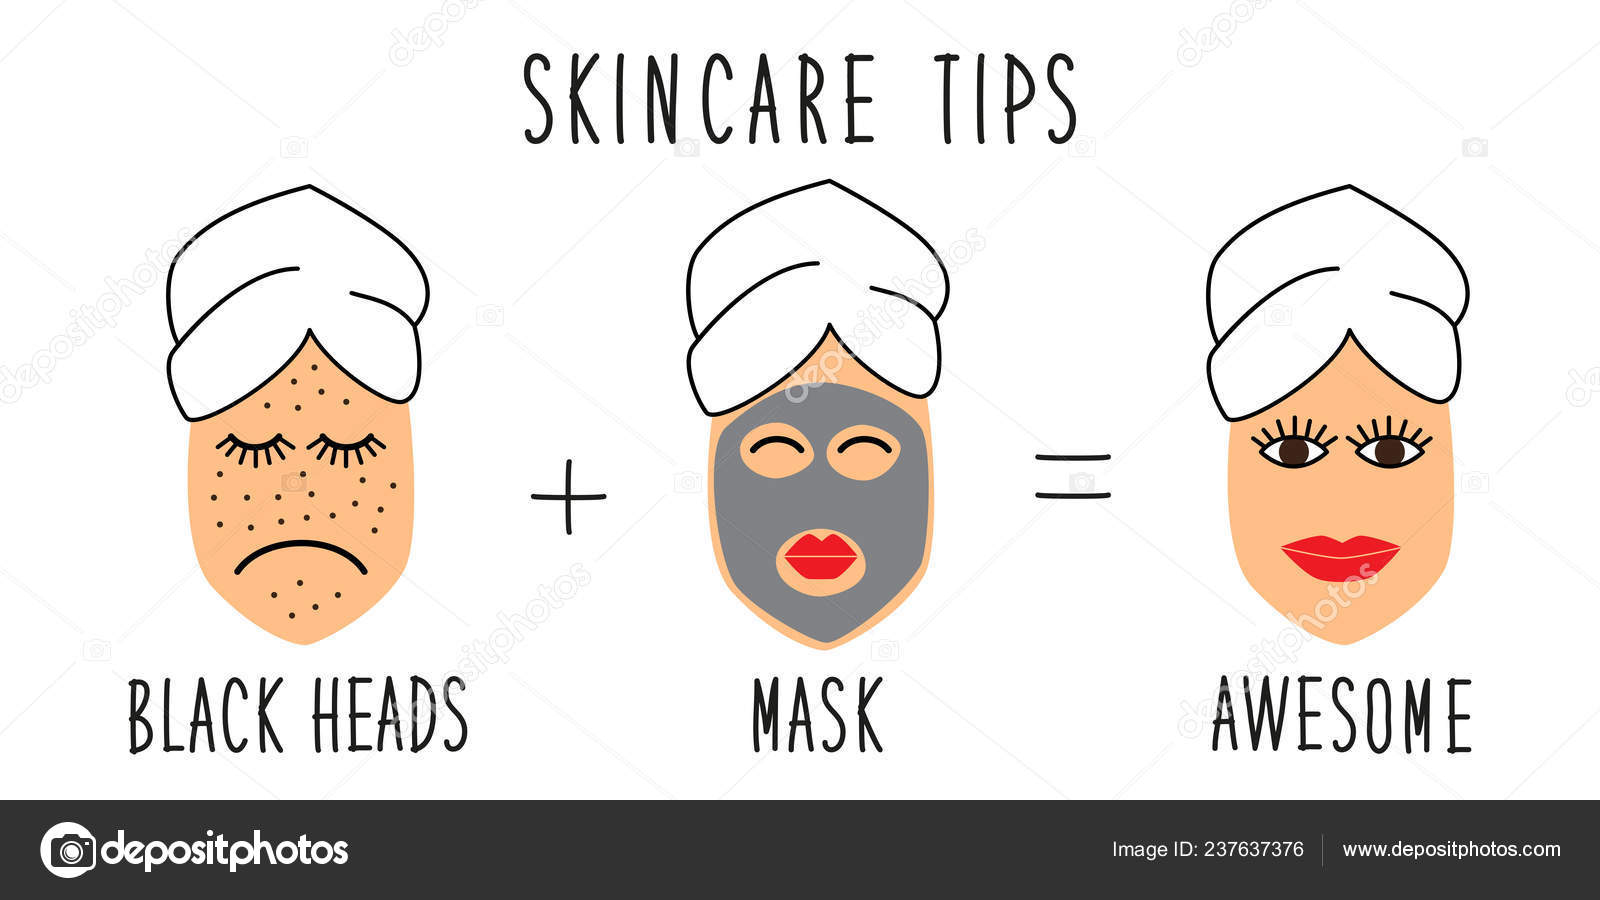 Cute And Simple Skincare Tips For Black Heads Treatment Stock Vector C Ishkrabal 237637376